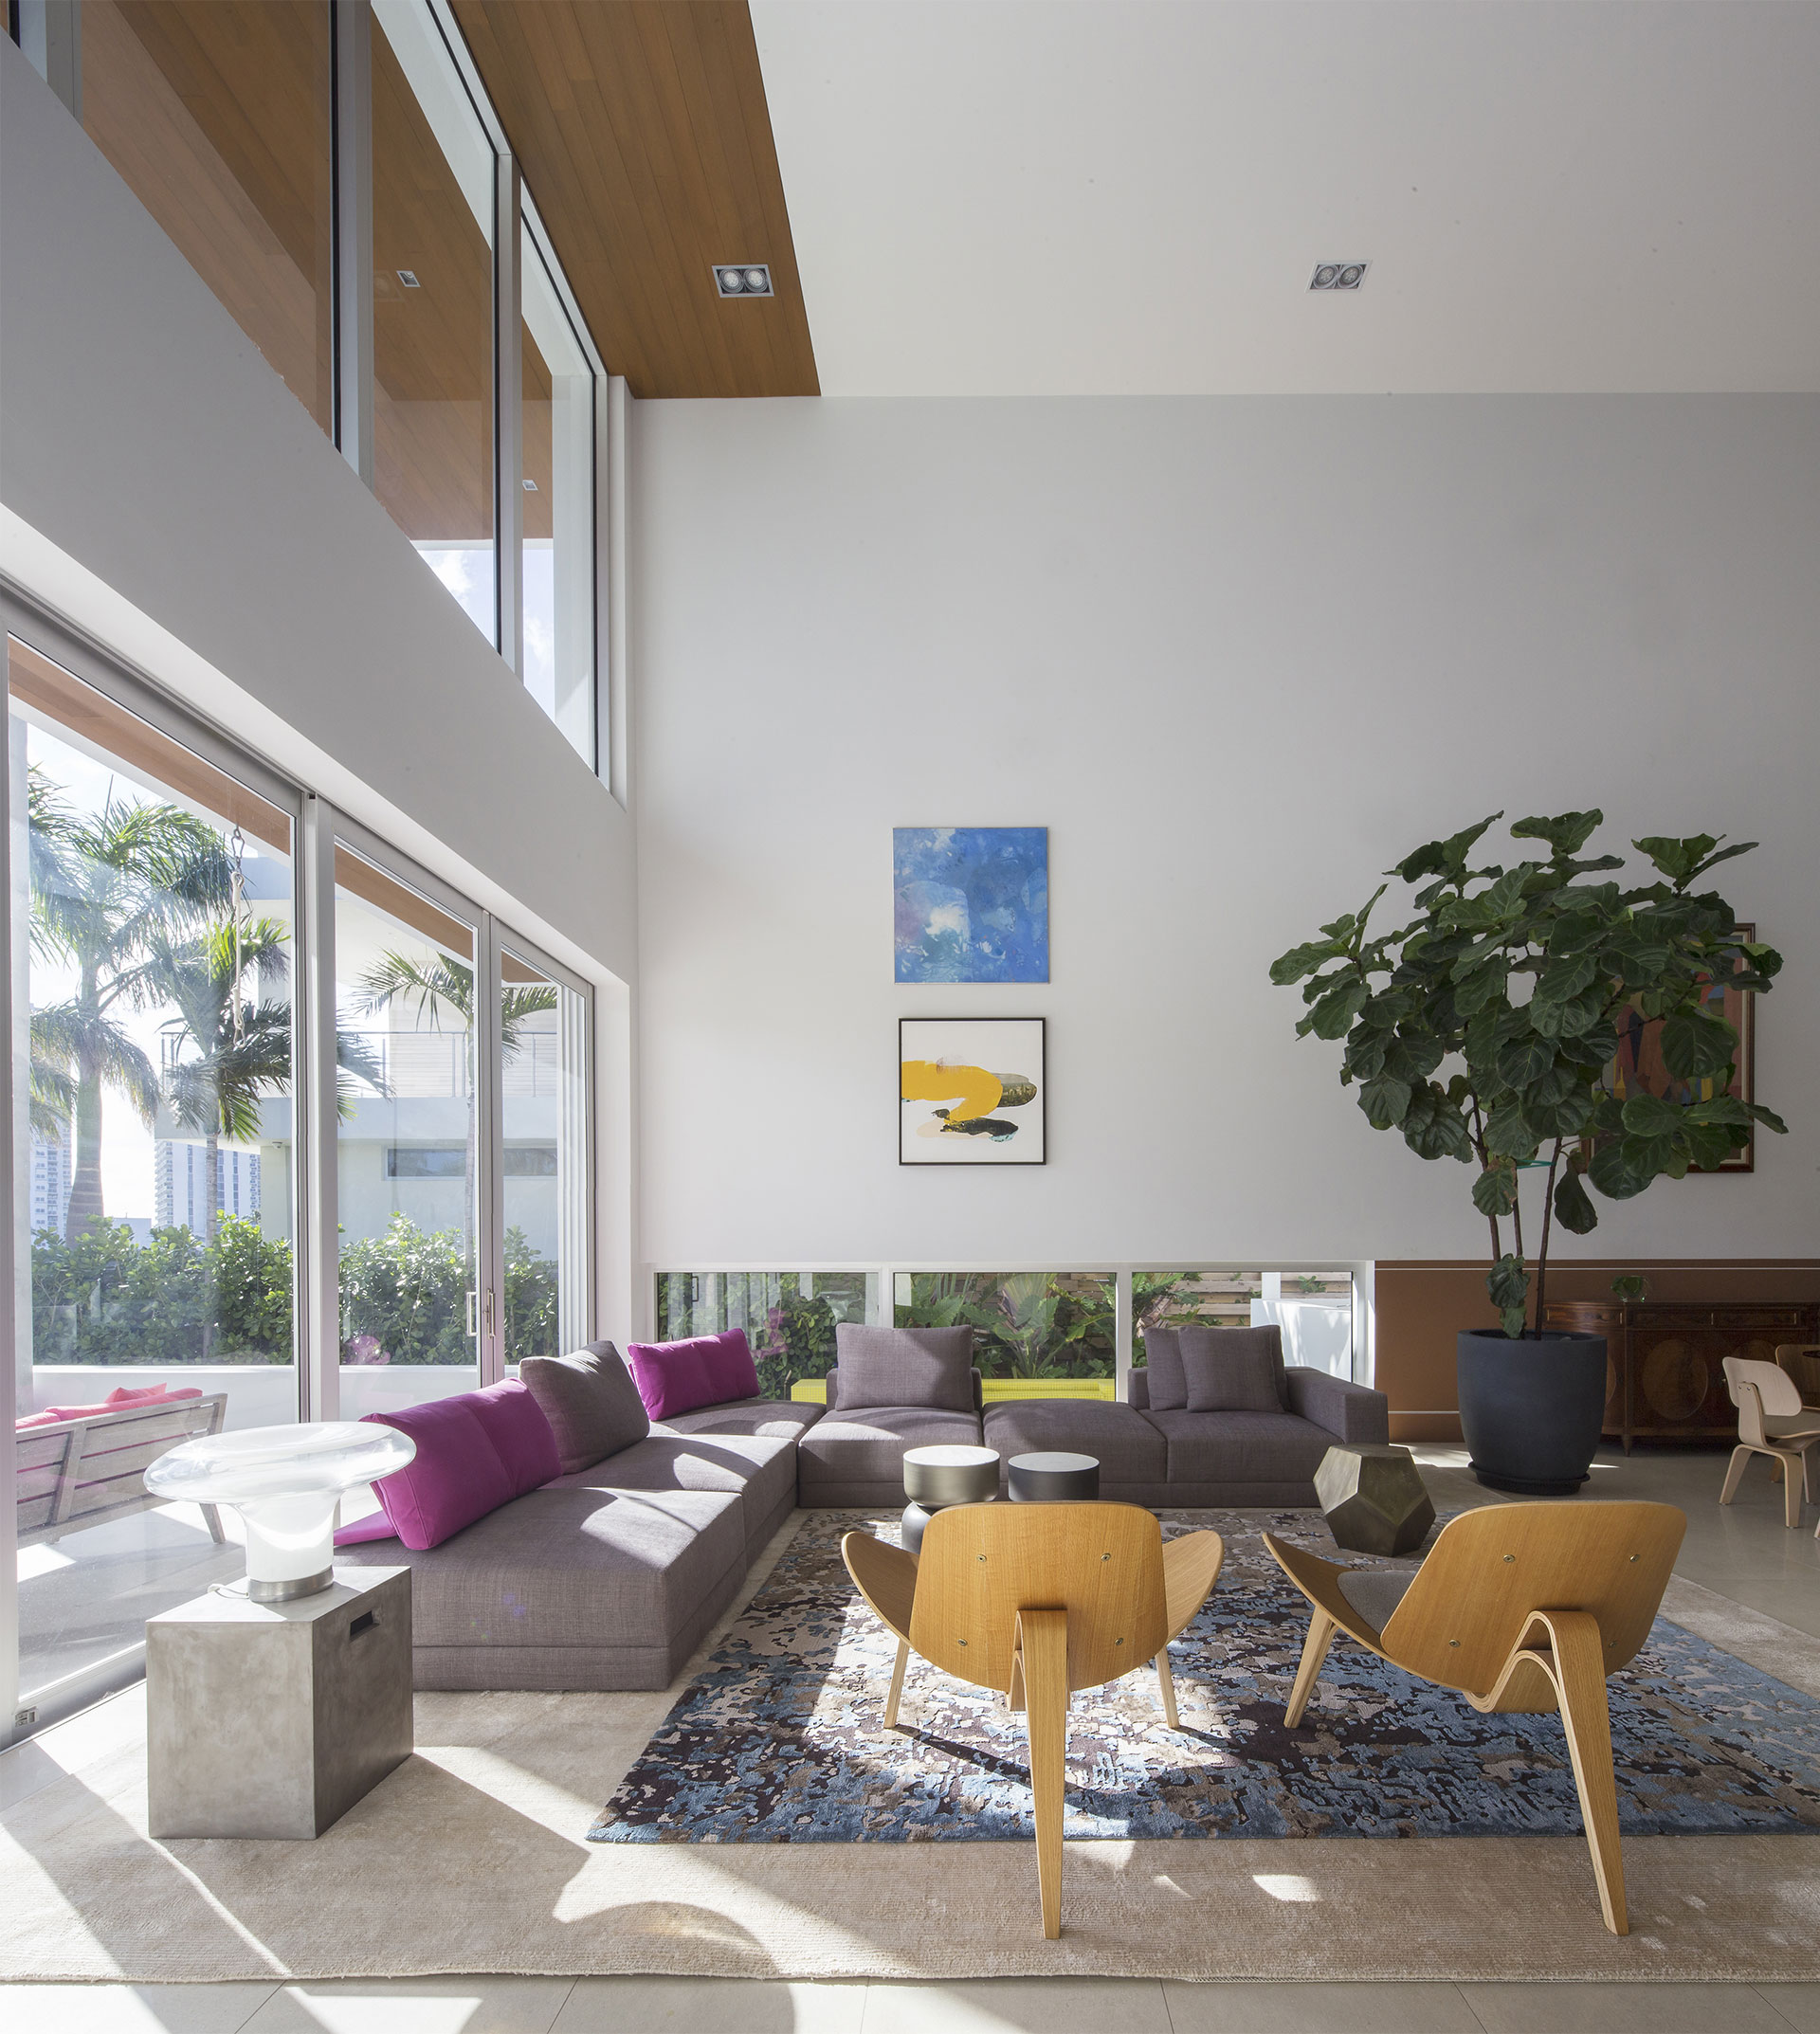 Living Room View Interior Design project in 484 North Parkway, Florida